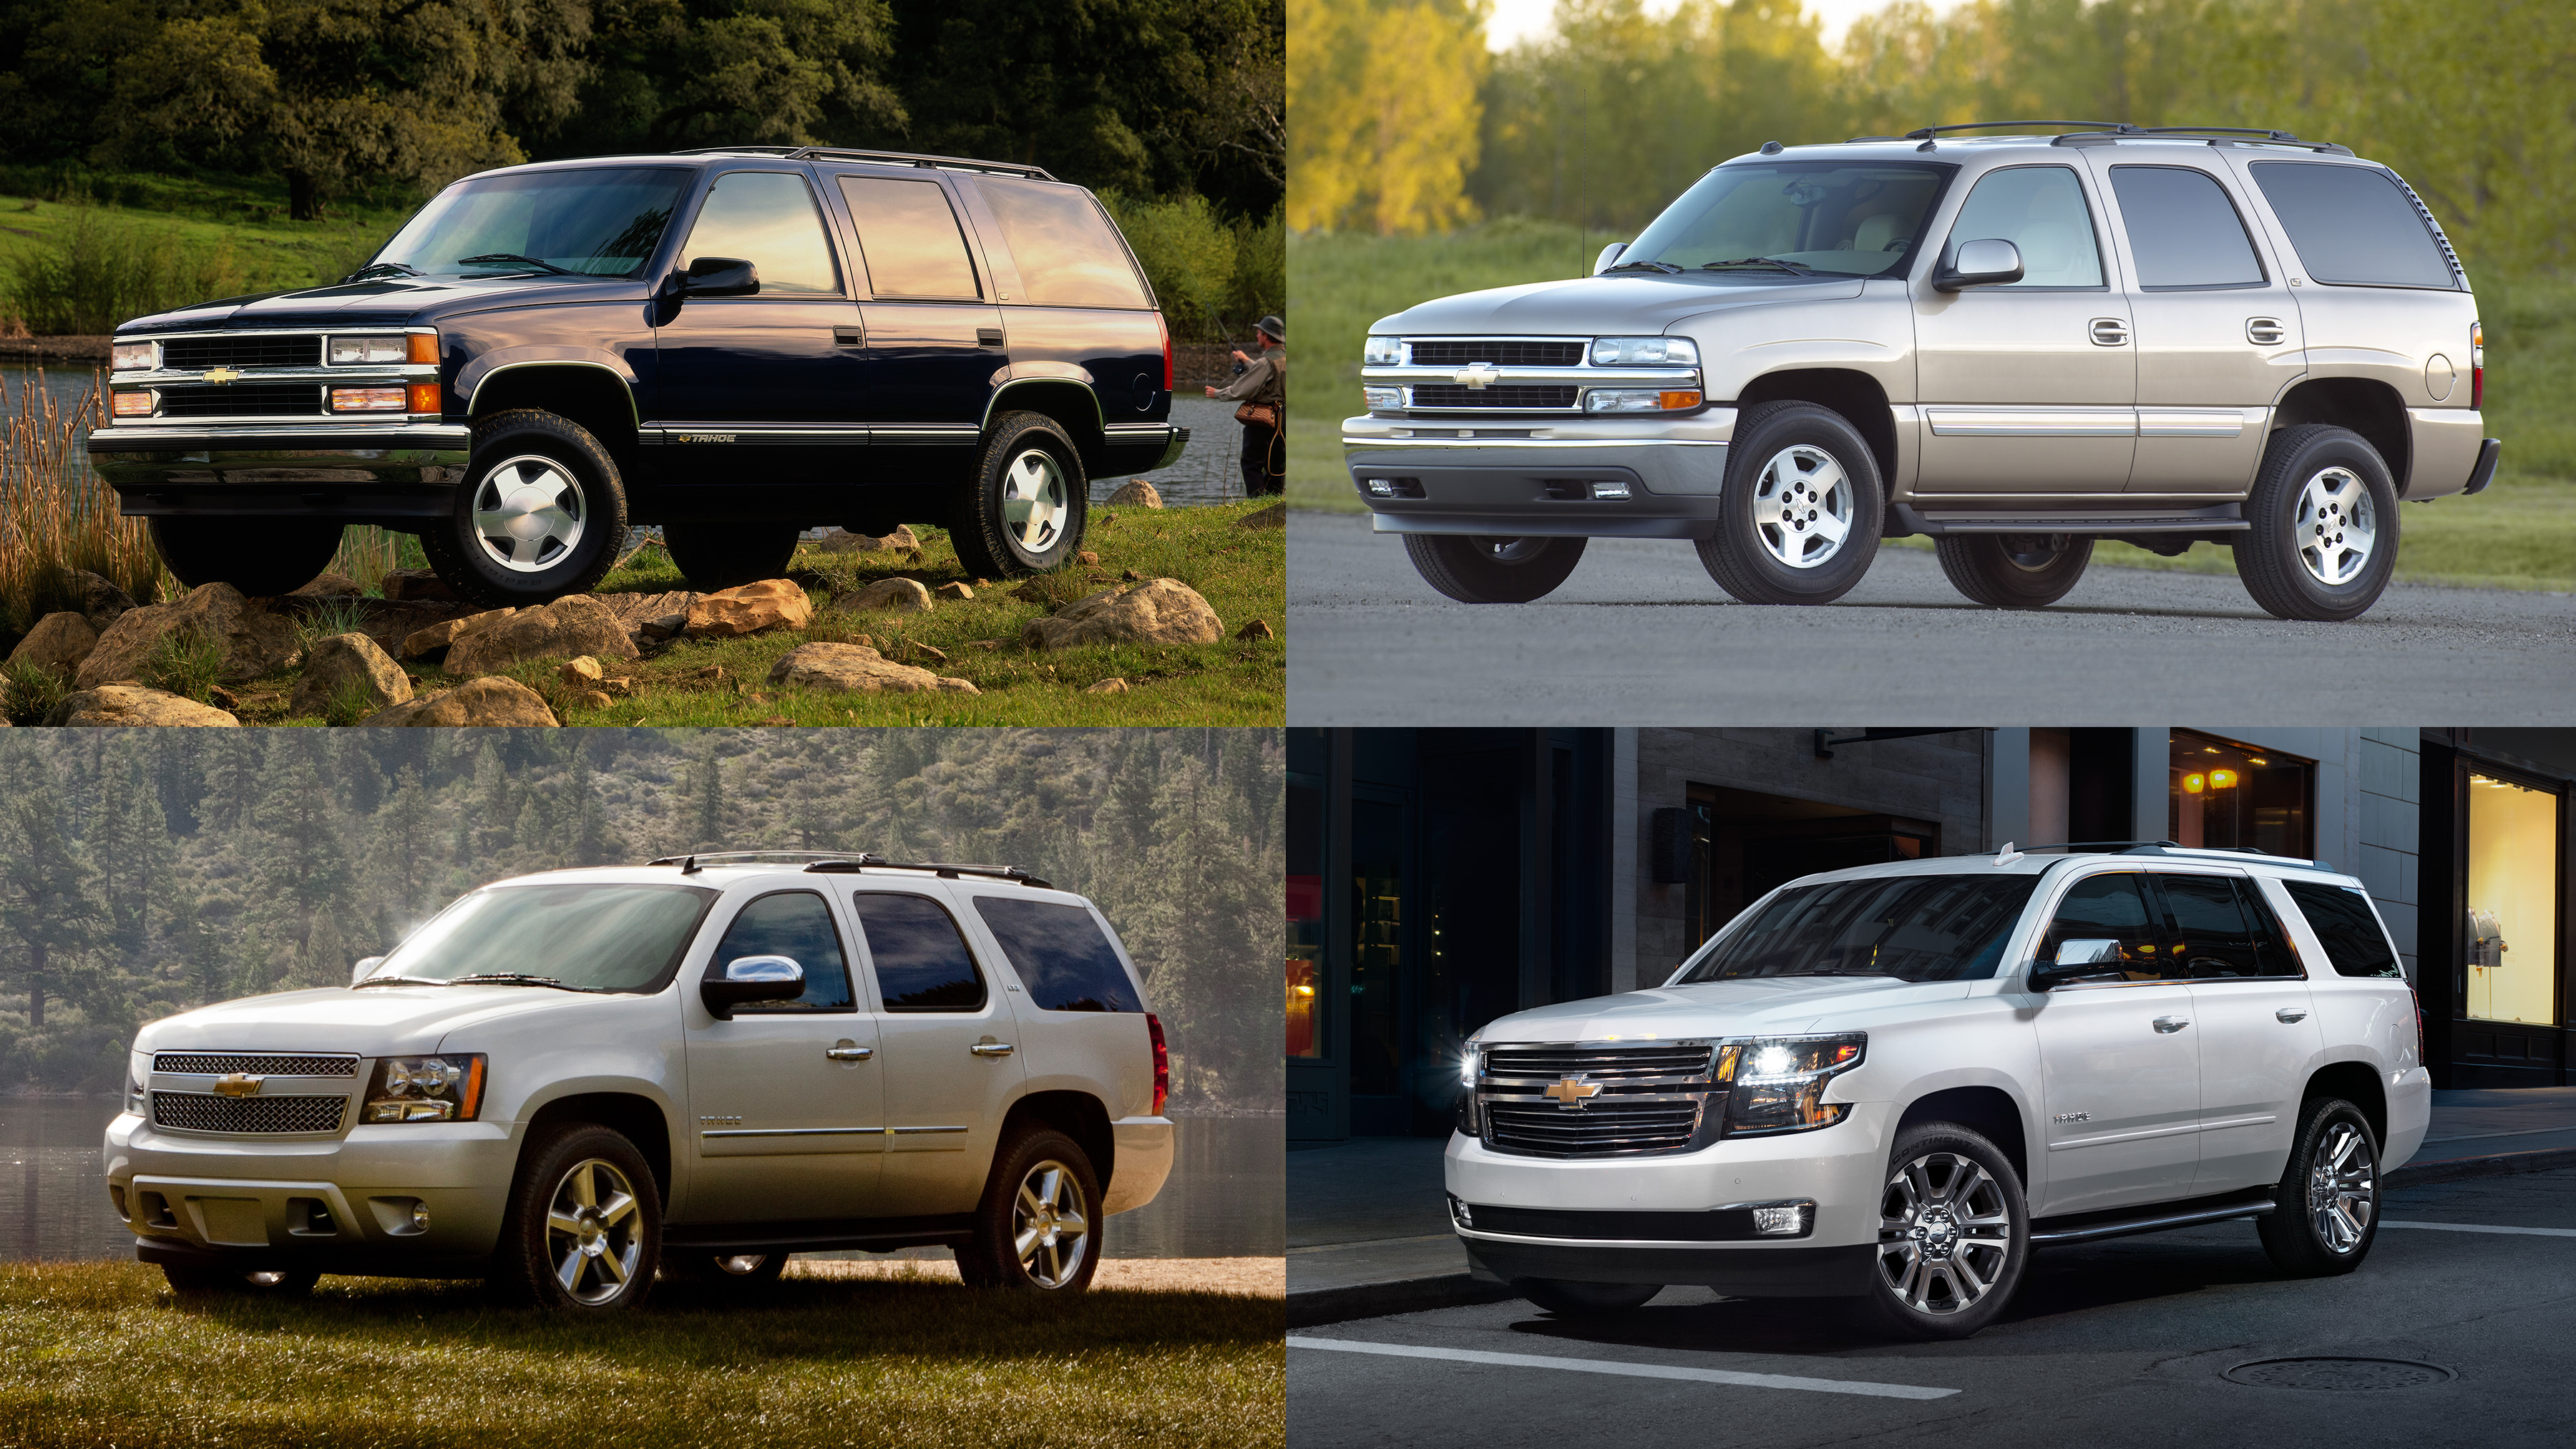 Chevrolet Tahoe Turns 25 Best Selling Full Size Suv In The U S Thanks To Capability And Cachet